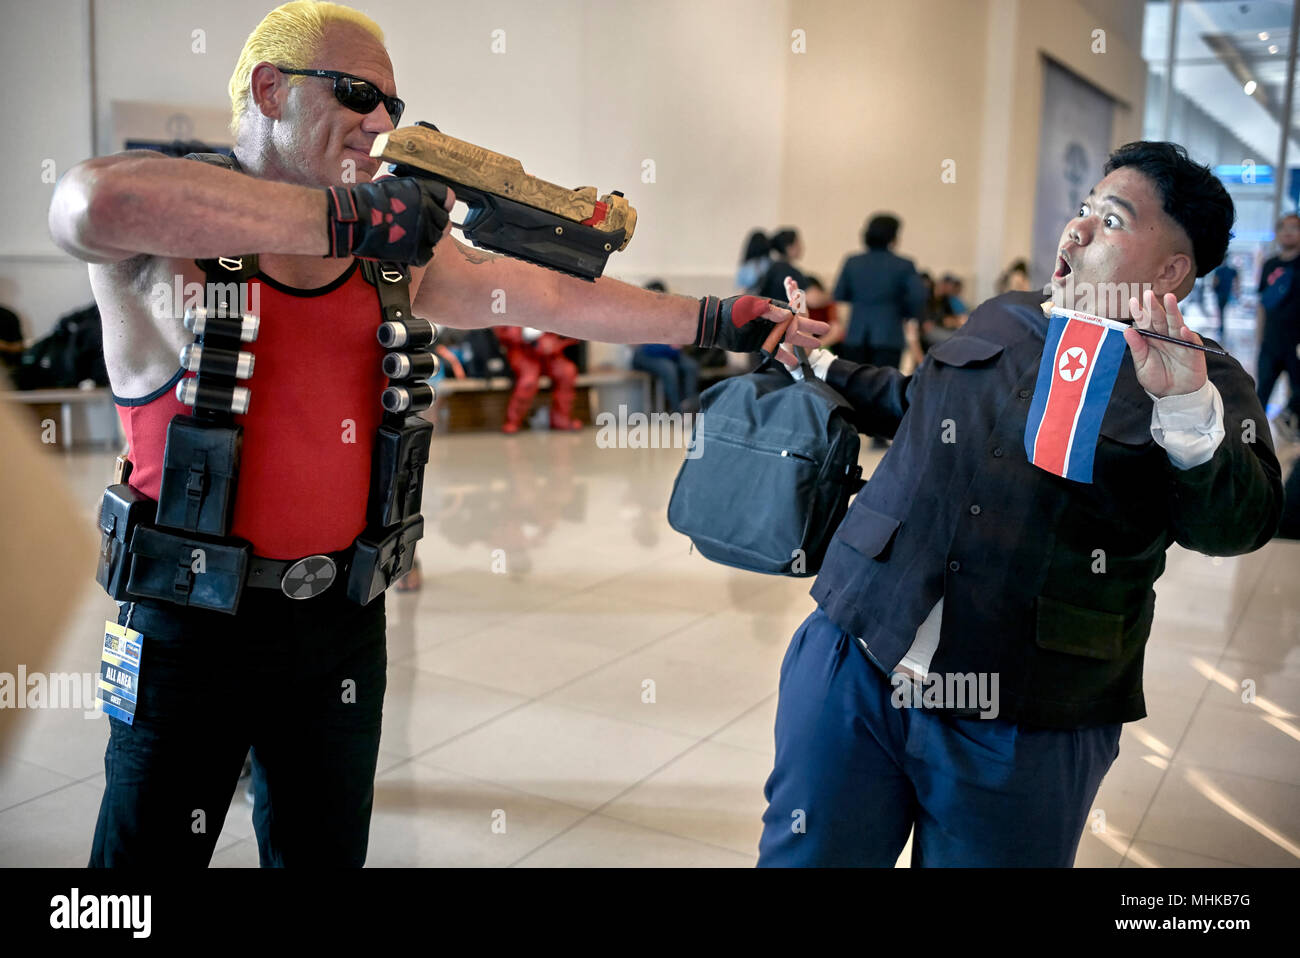 Comic Con and Cosplay costume event, Bangkok Thailand Southeast Asia - Stock Image